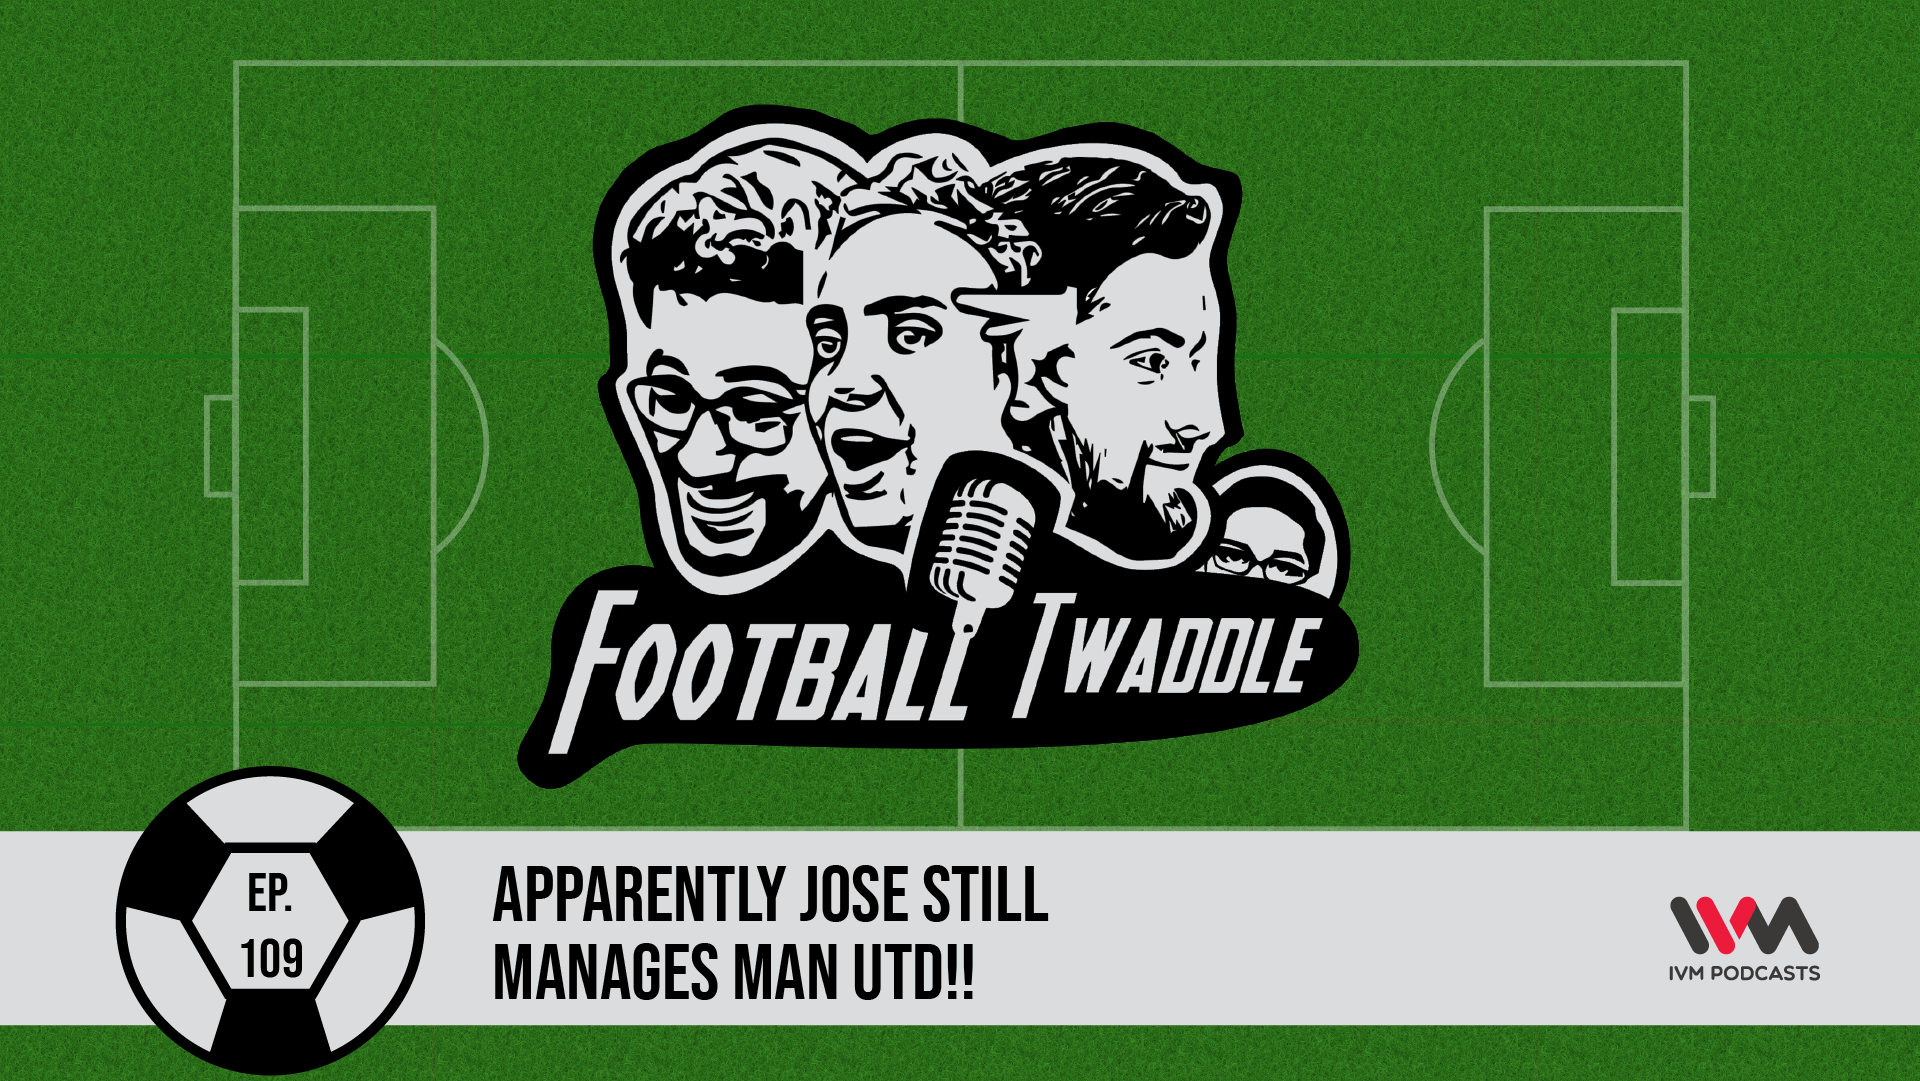 FootballTwaddleEpisode109.png